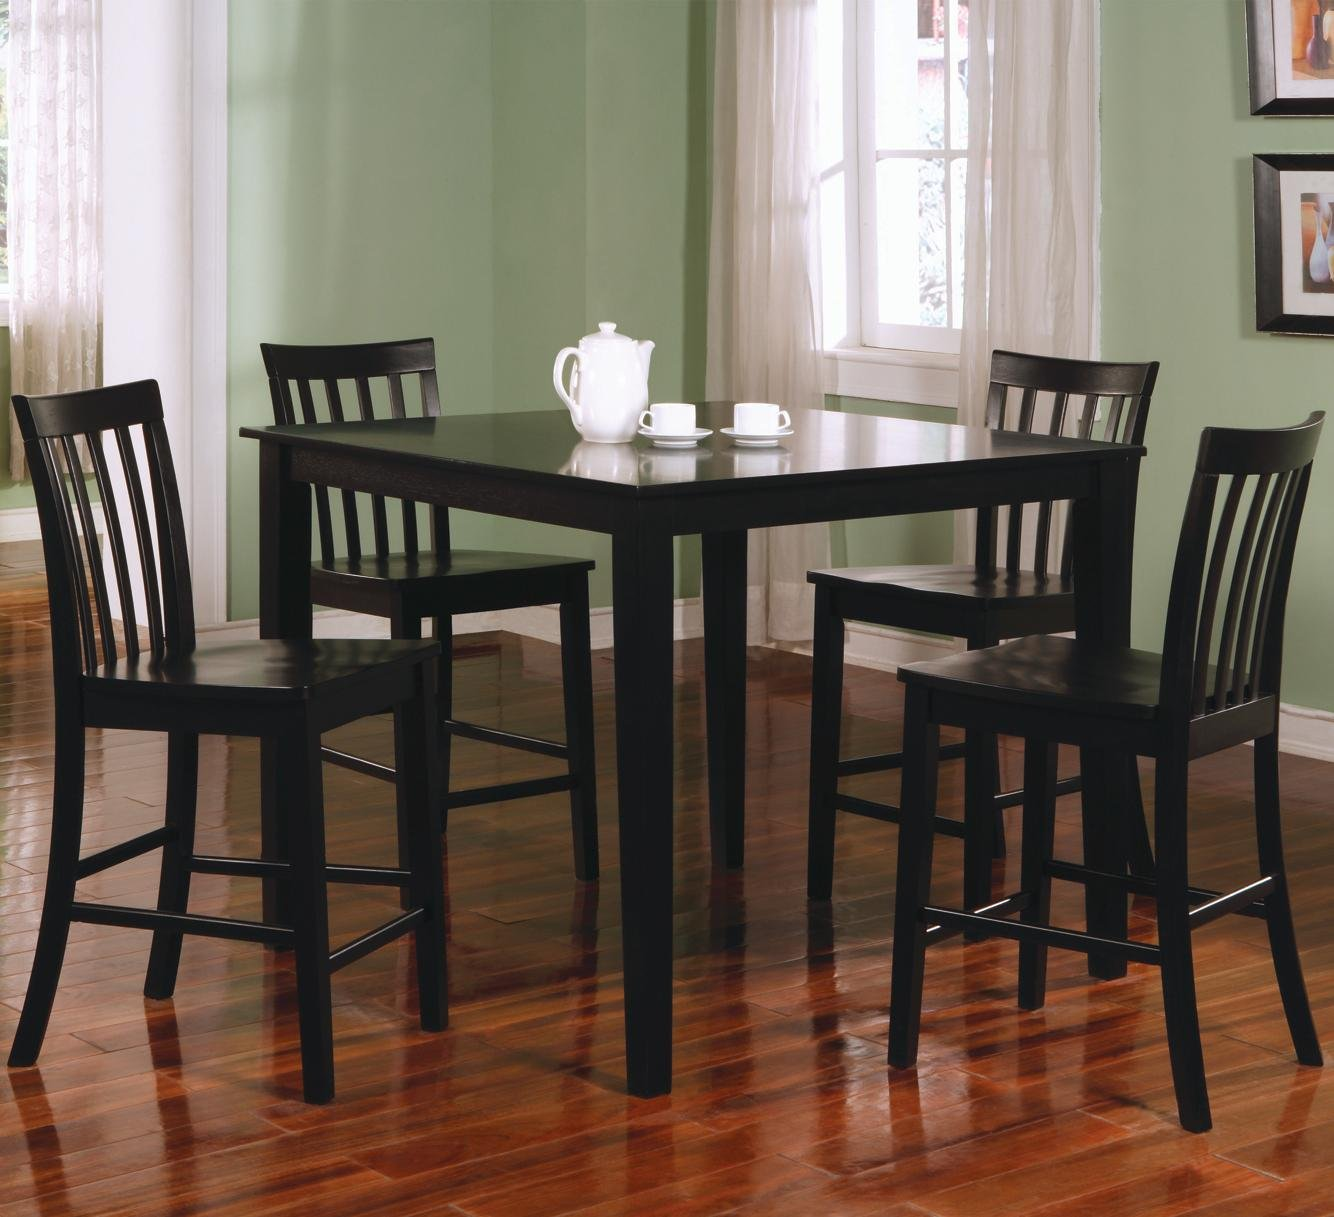 Amazon.com - Ashland 5-Pc Counter Height Dining Set in Black by Coaster - Table \u0026 Chair Sets & Amazon.com - Ashland 5-Pc Counter Height Dining Set in Black by ...